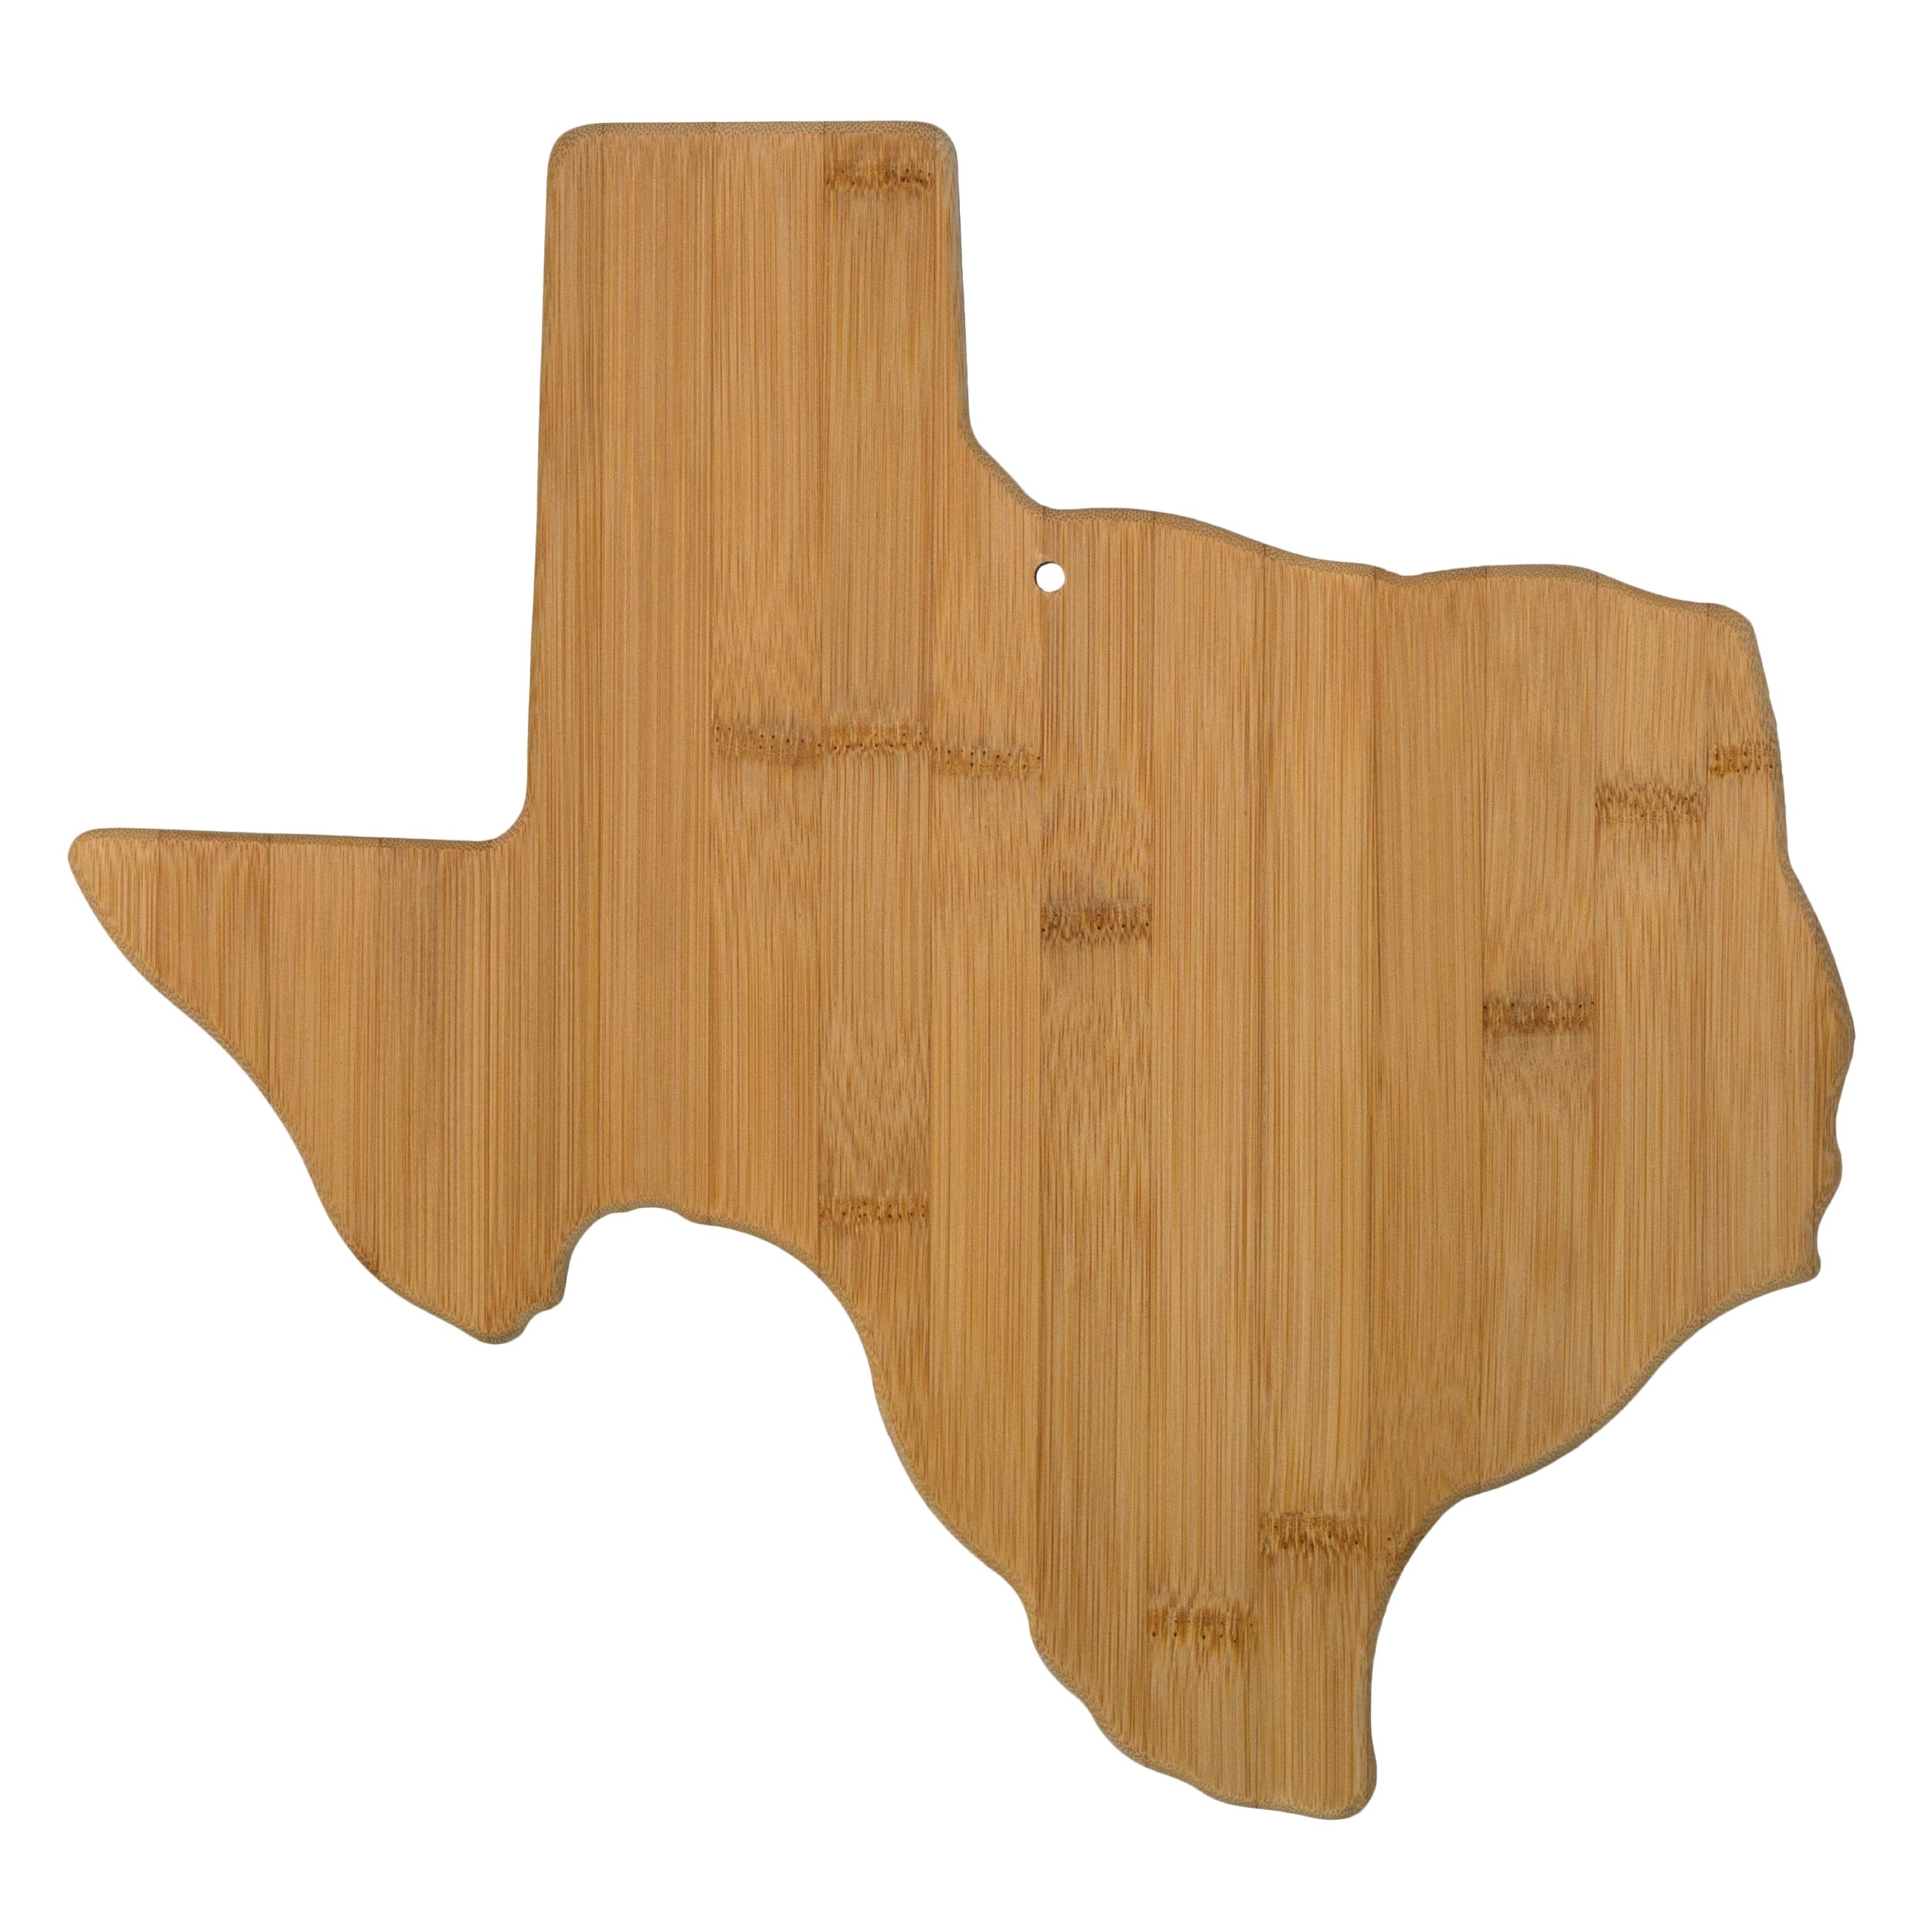 "Totally Bamboo State Cutting & Serving Board – ""TEXAS"", 100% Organic Bamboo Cutting Board for Cooking, Entertaining, Décor and Gifts. Designed in the USA!"